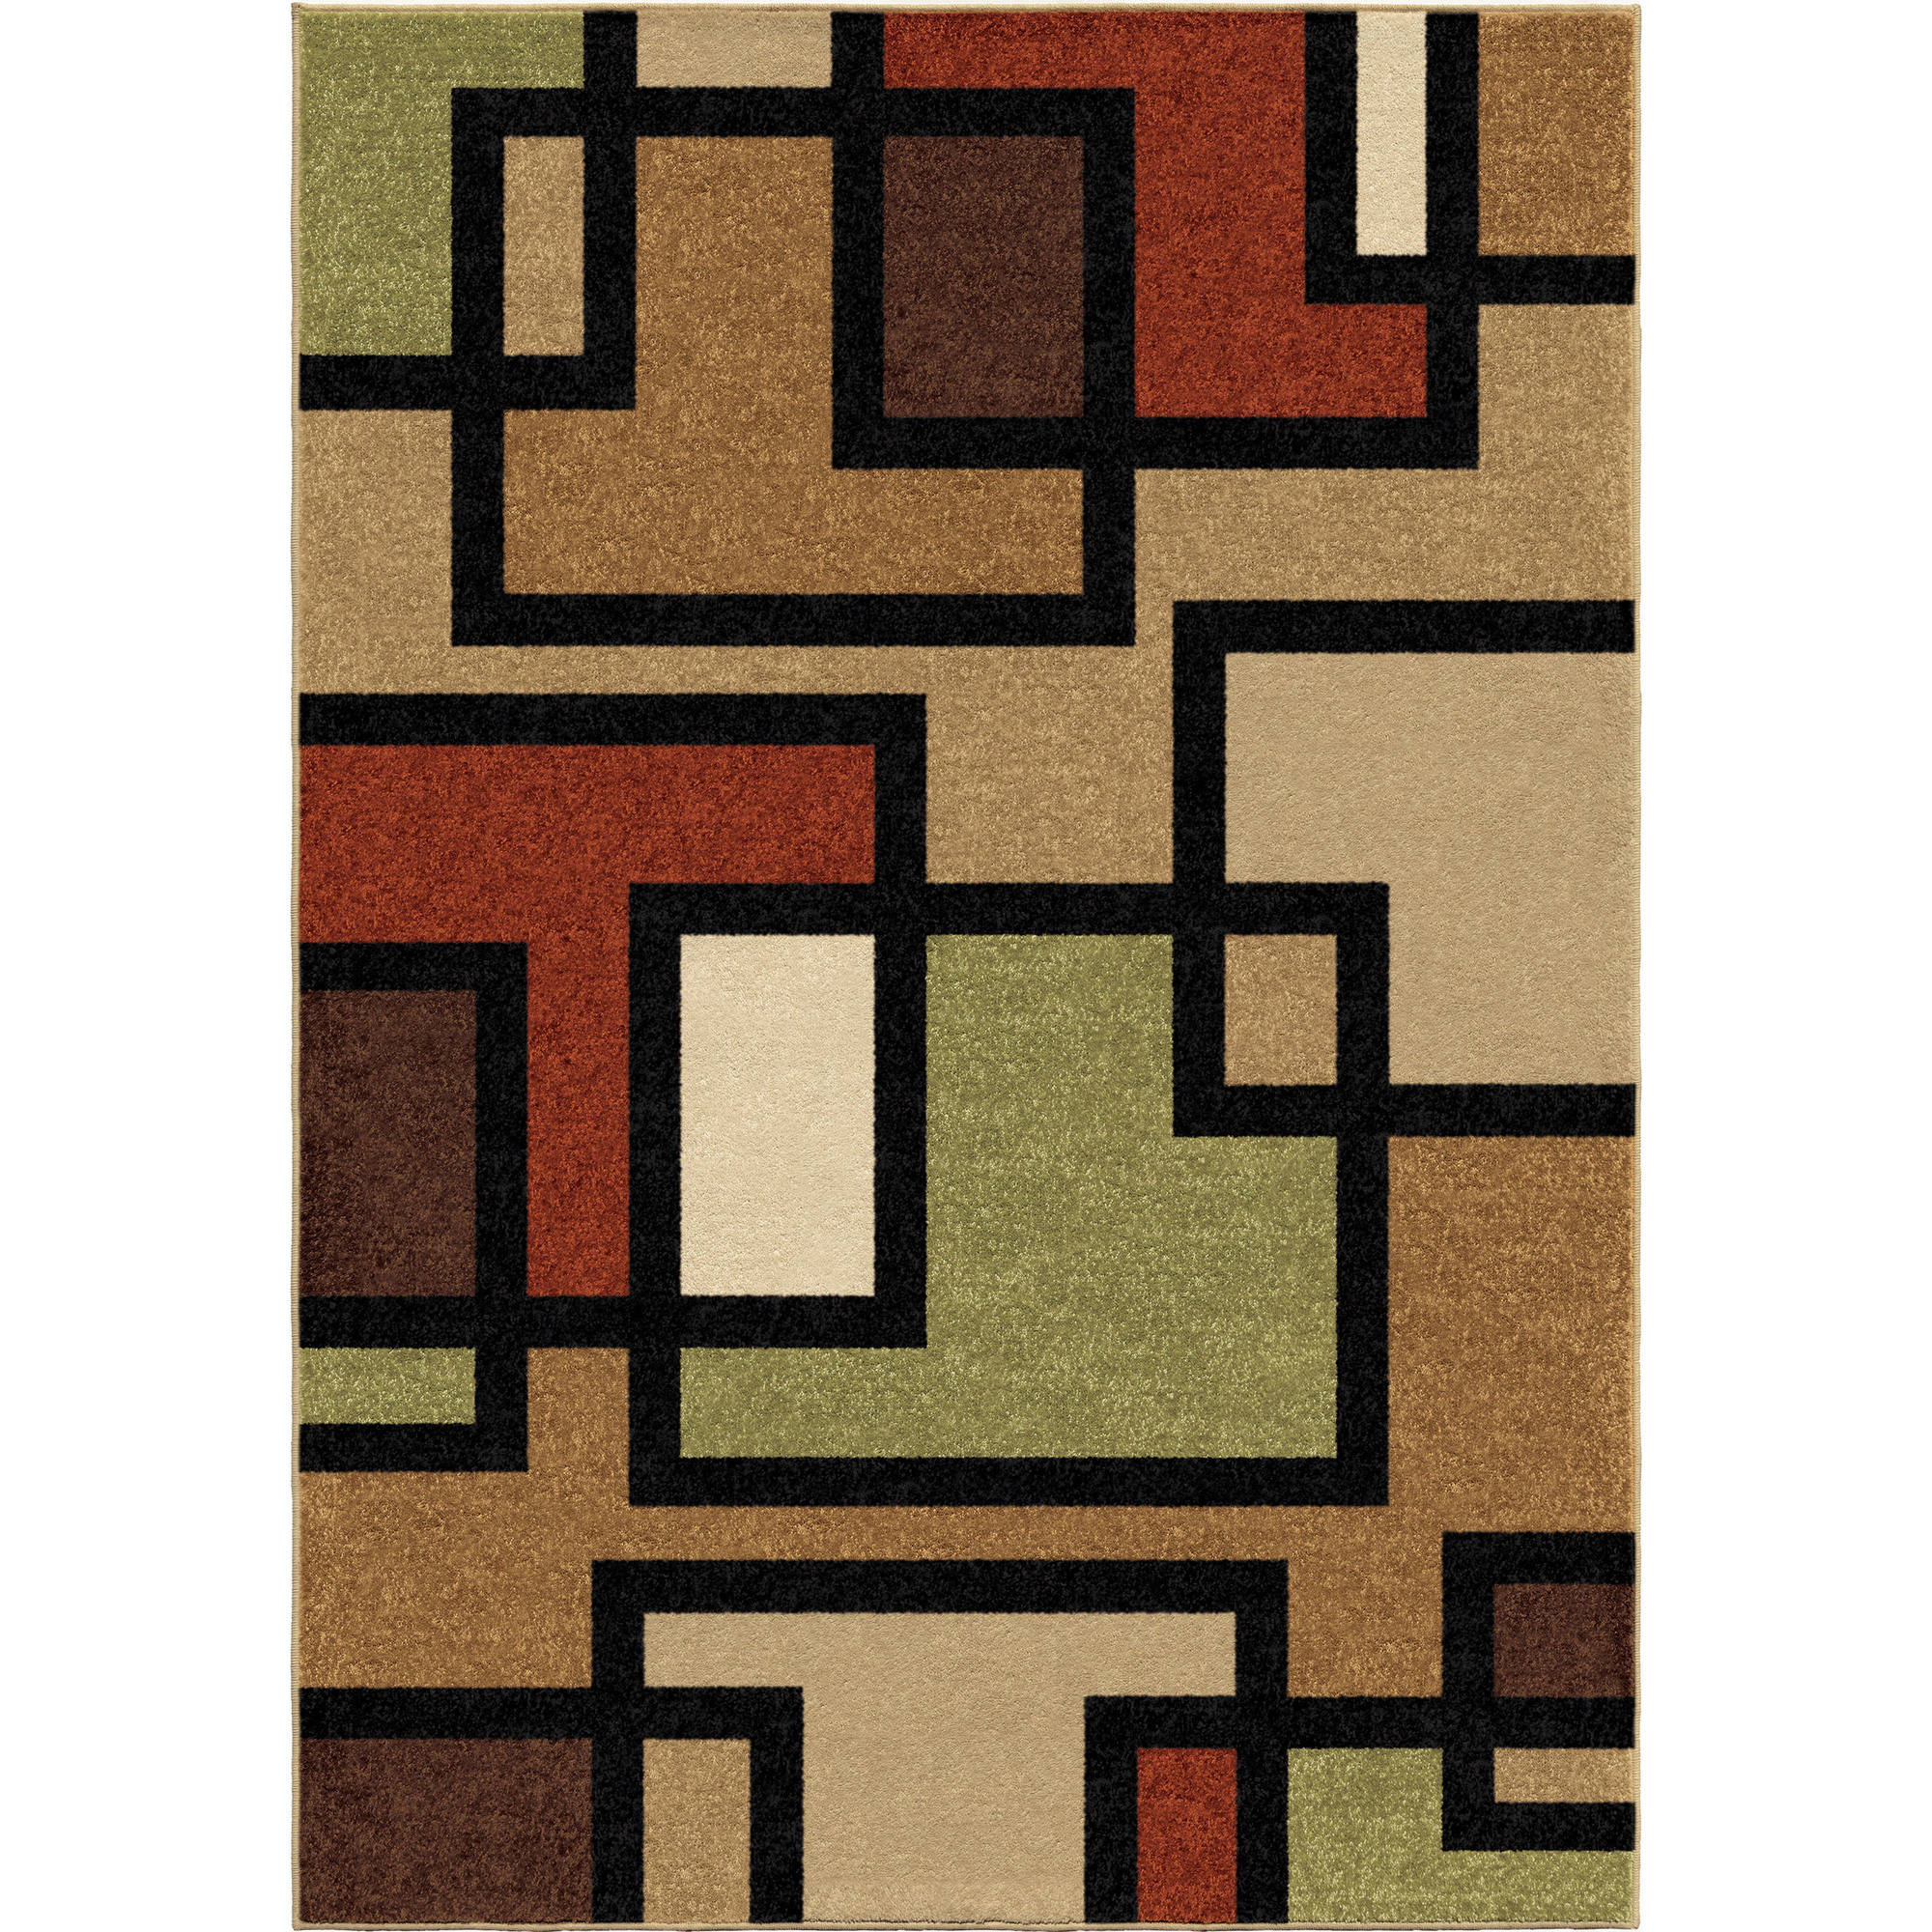 Orian Rugs Blended Blocks Area Rug, Multi Color   Walmart.com Images